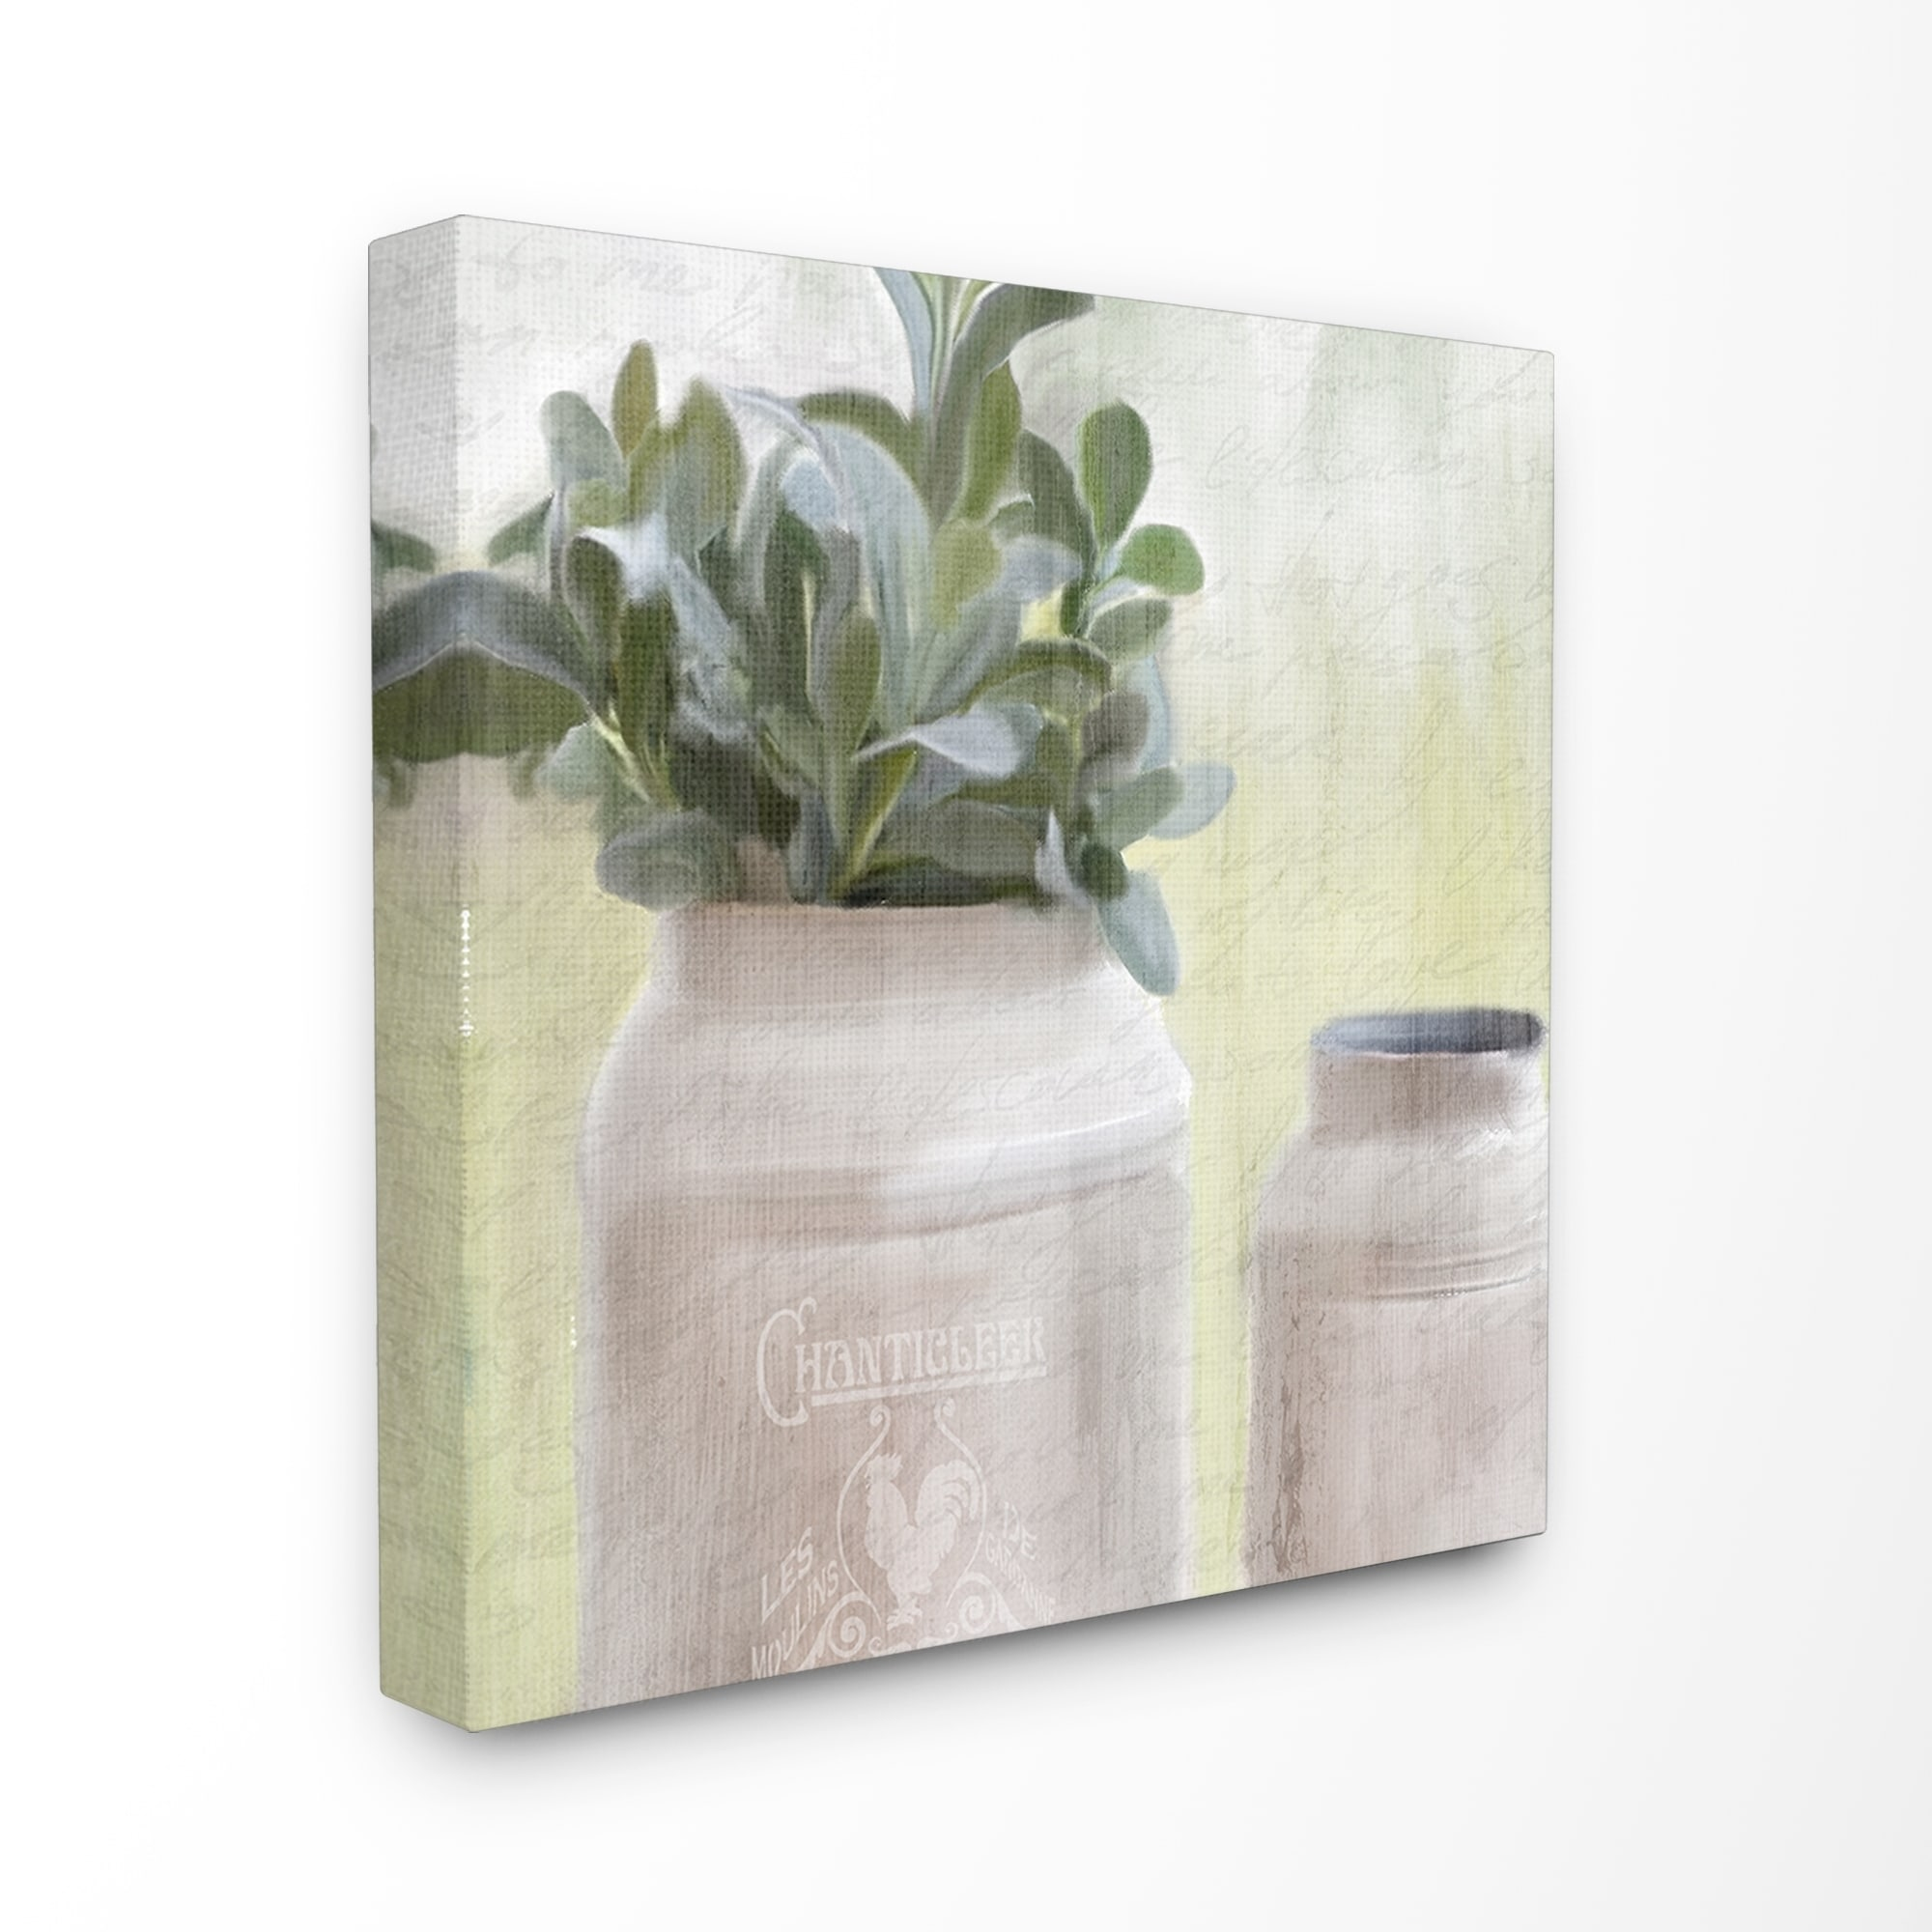 The Stupell Home Decor White Farmhouse Mill Can Filled With Greenery